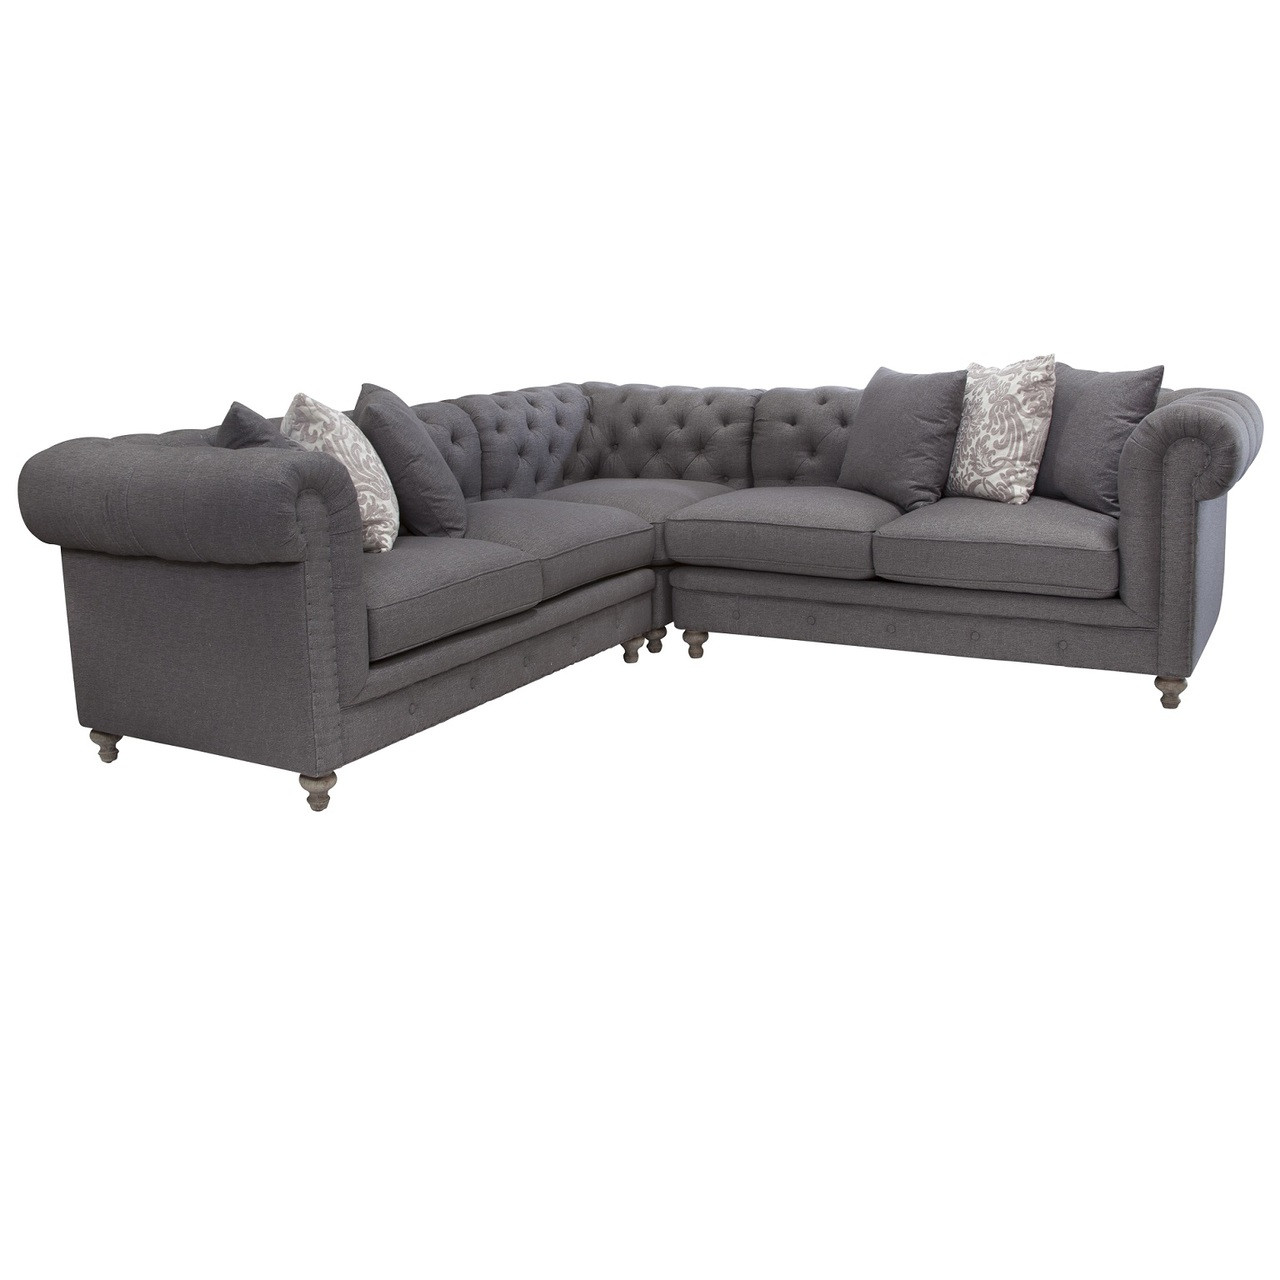 Alice charcoal tufted 3 piece corner sectional sofa 114 zin home